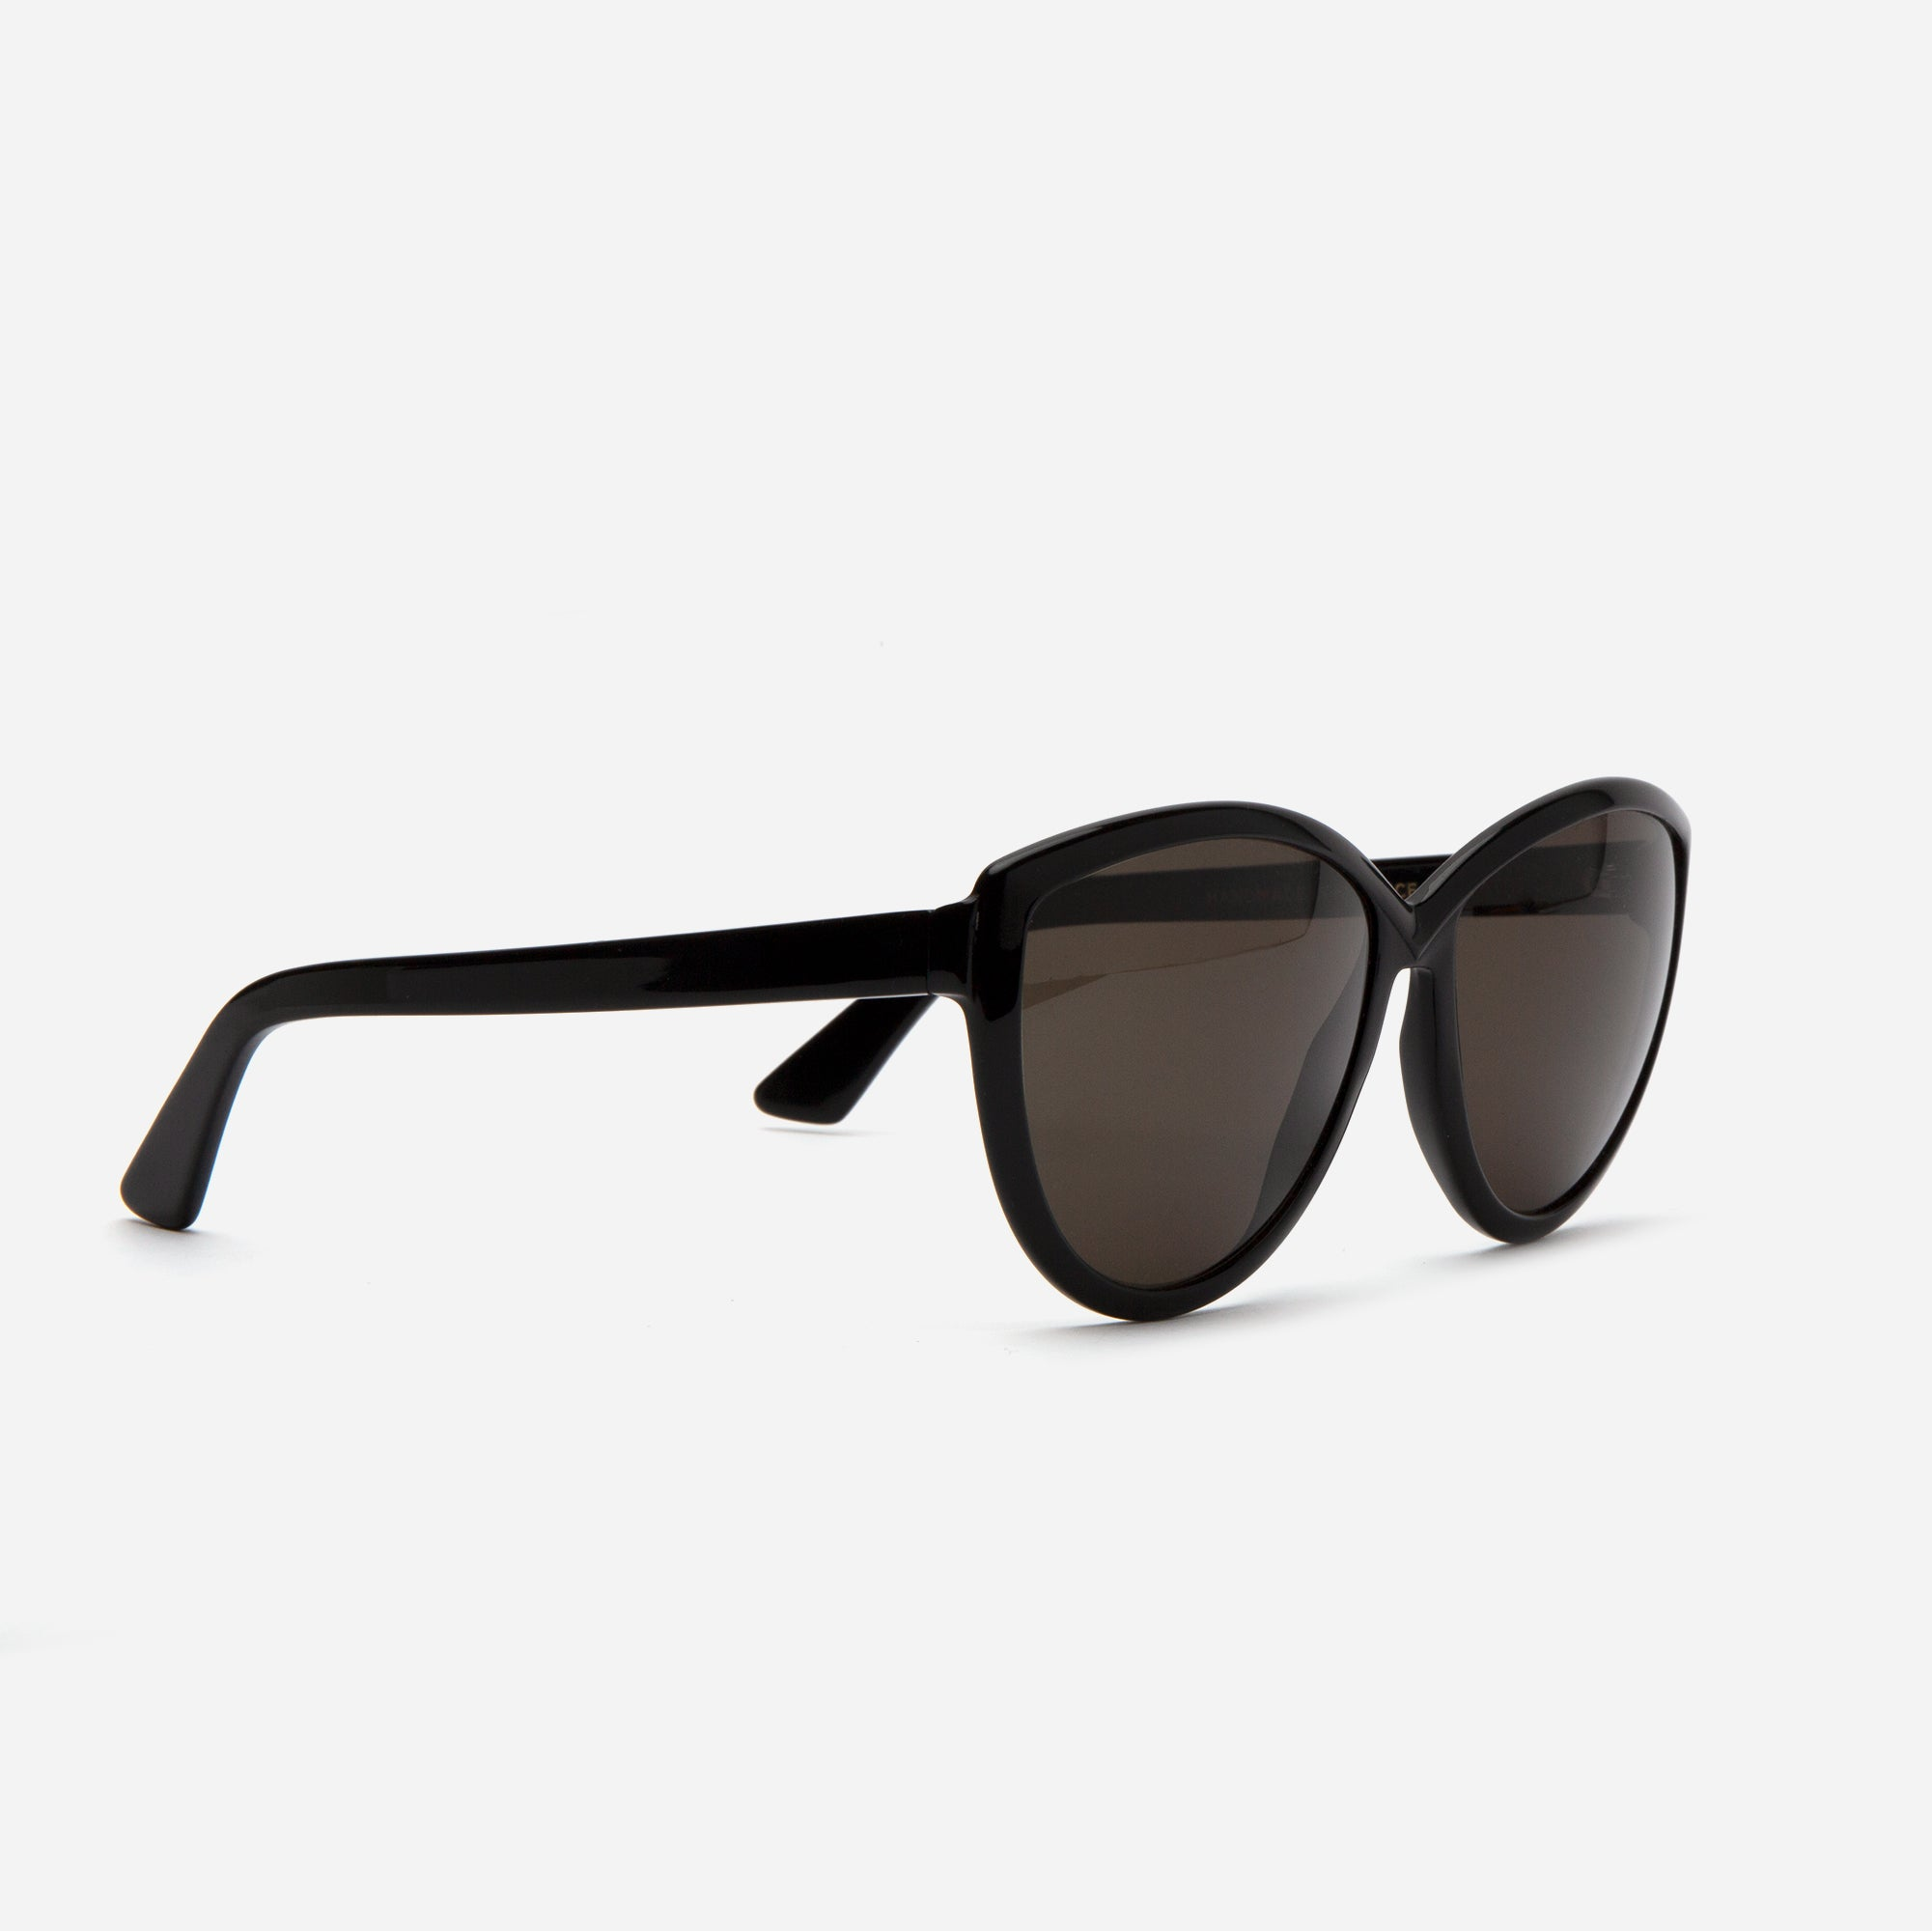 Agathe Sunglasses Black